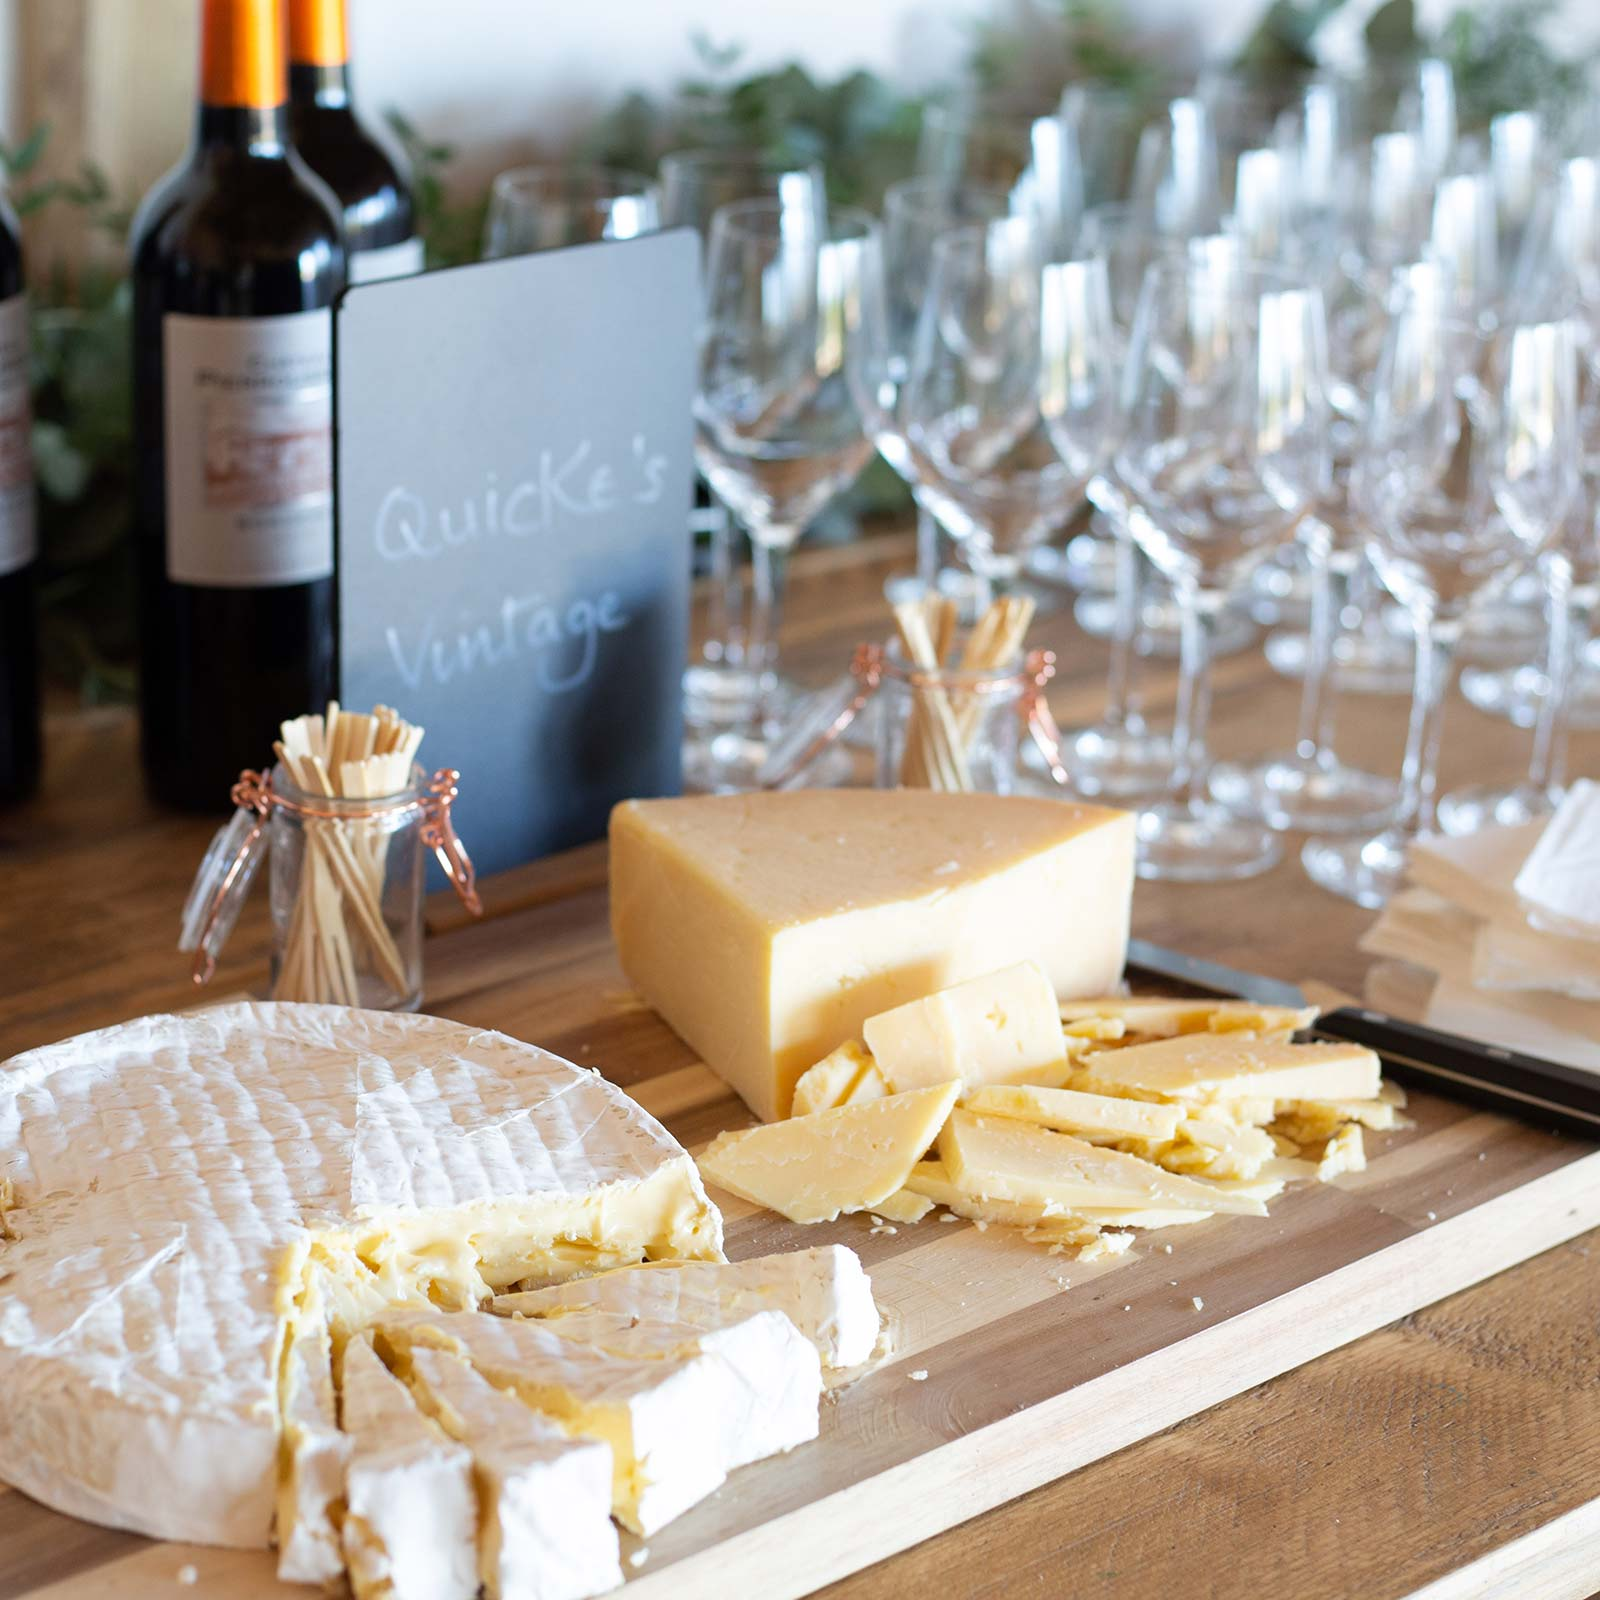 Wine and cheese pairing experience at Brickhouse Vineyard in Devon, England.